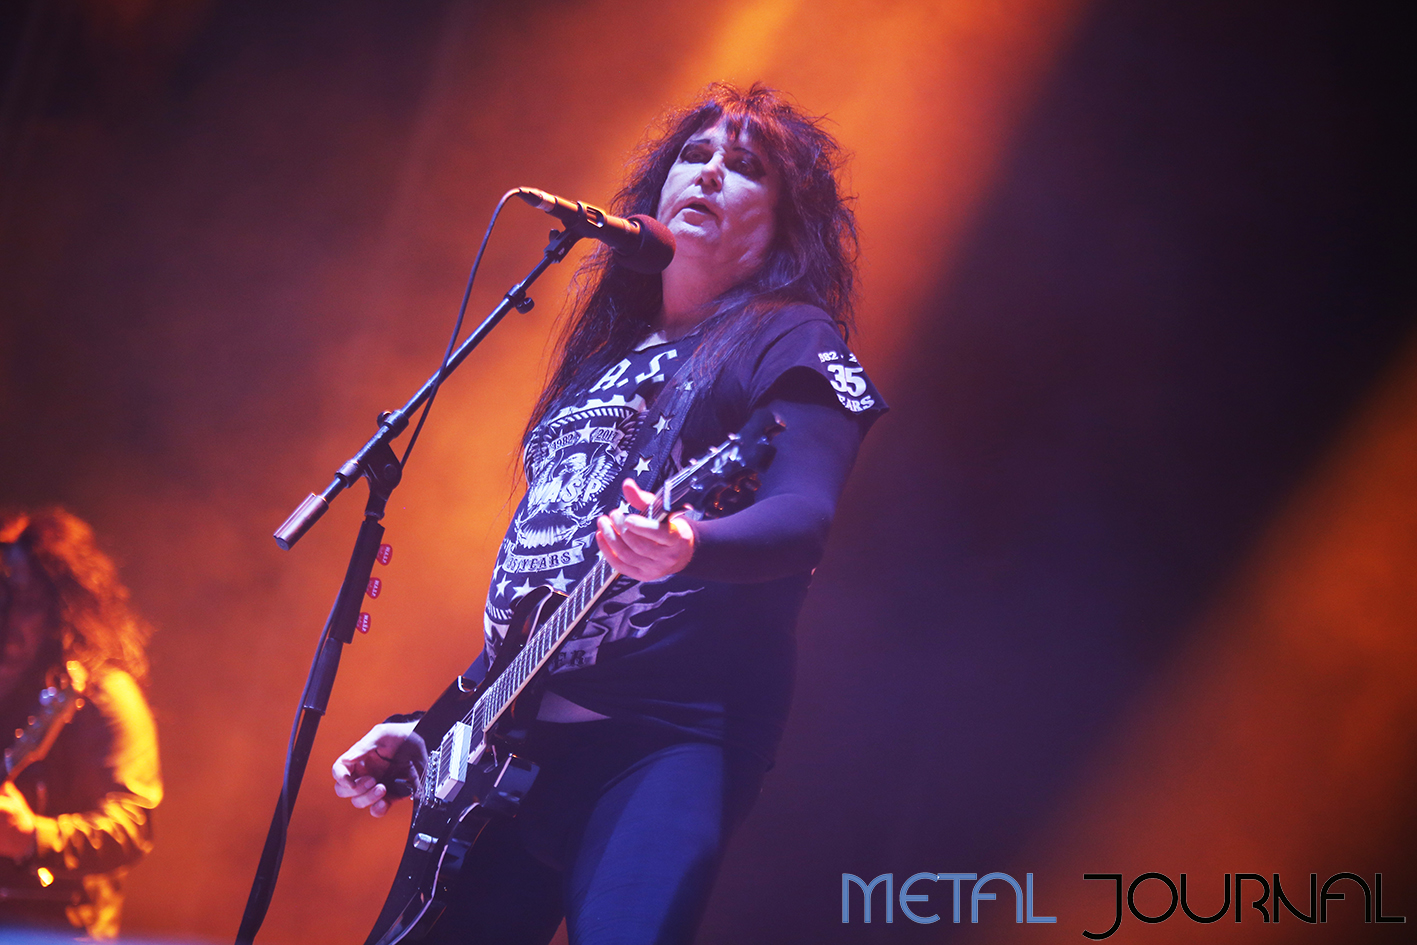 wasp - metal journal rock fest barcelona 2019 pic 1